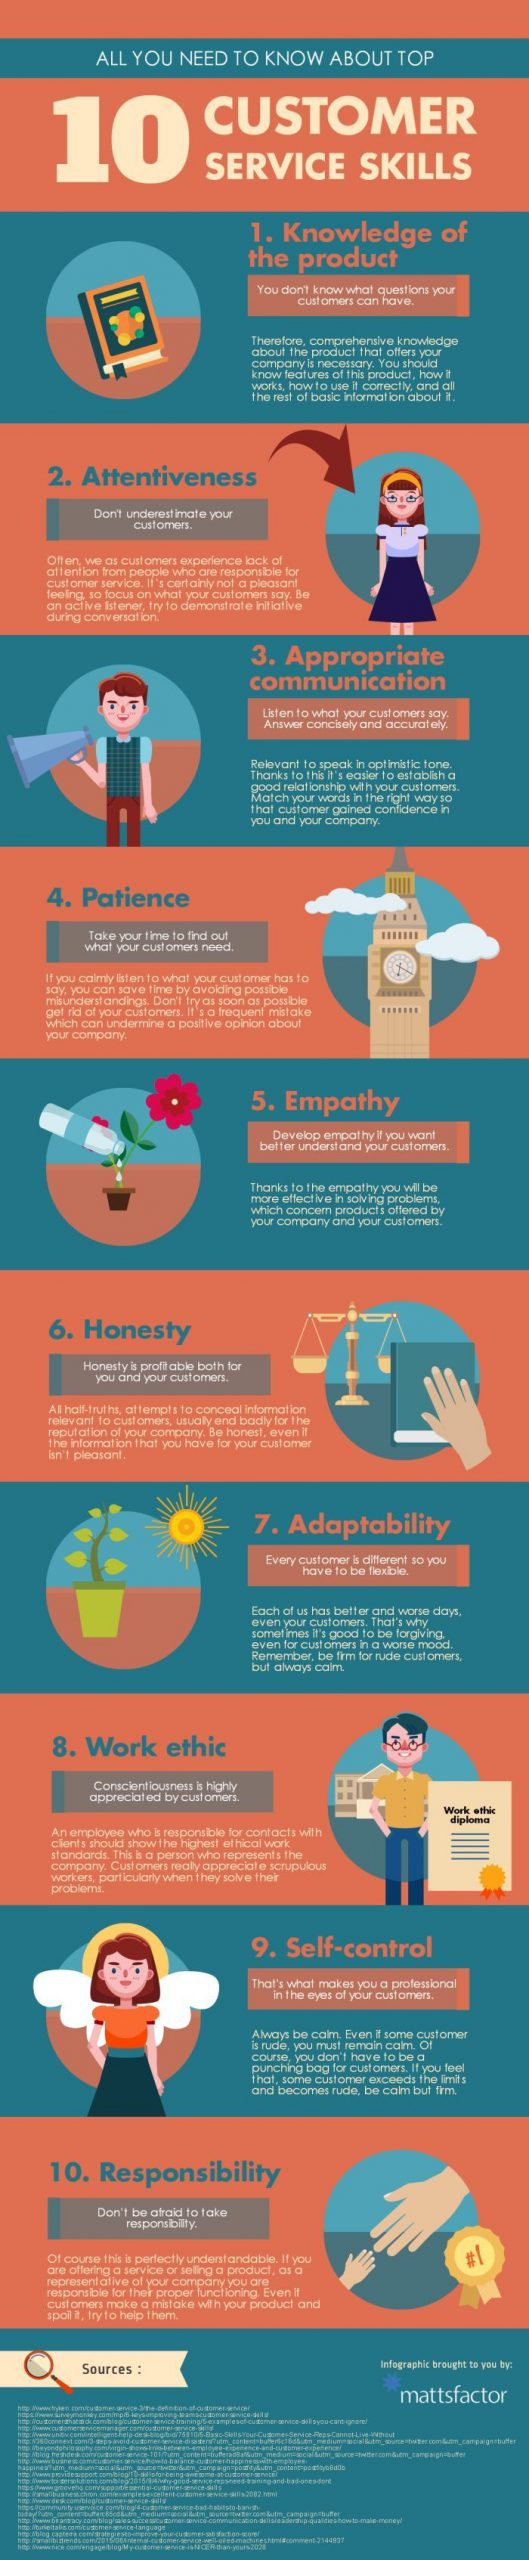 Strong Customer Service Skills Of All You Need to Know About top 10 Customer Service Skills Infographic